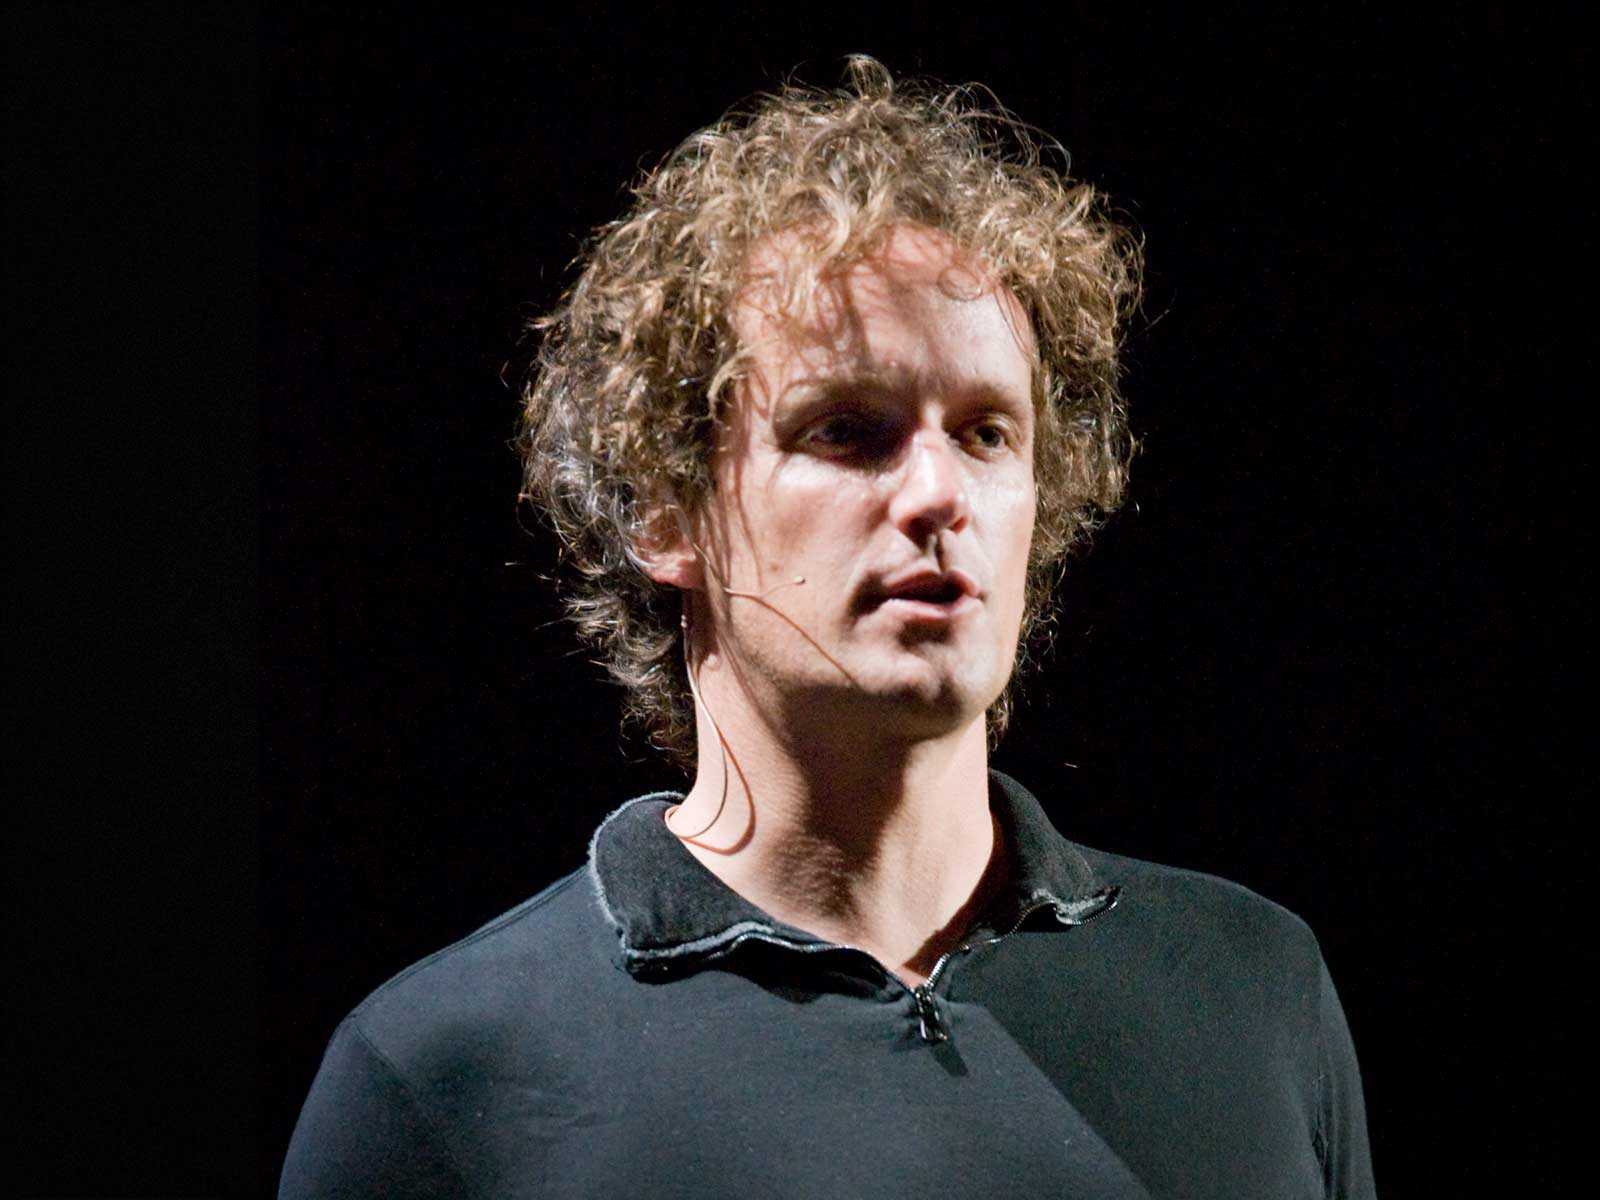 Designer Yves Behar: Design Based On Your User's Experience